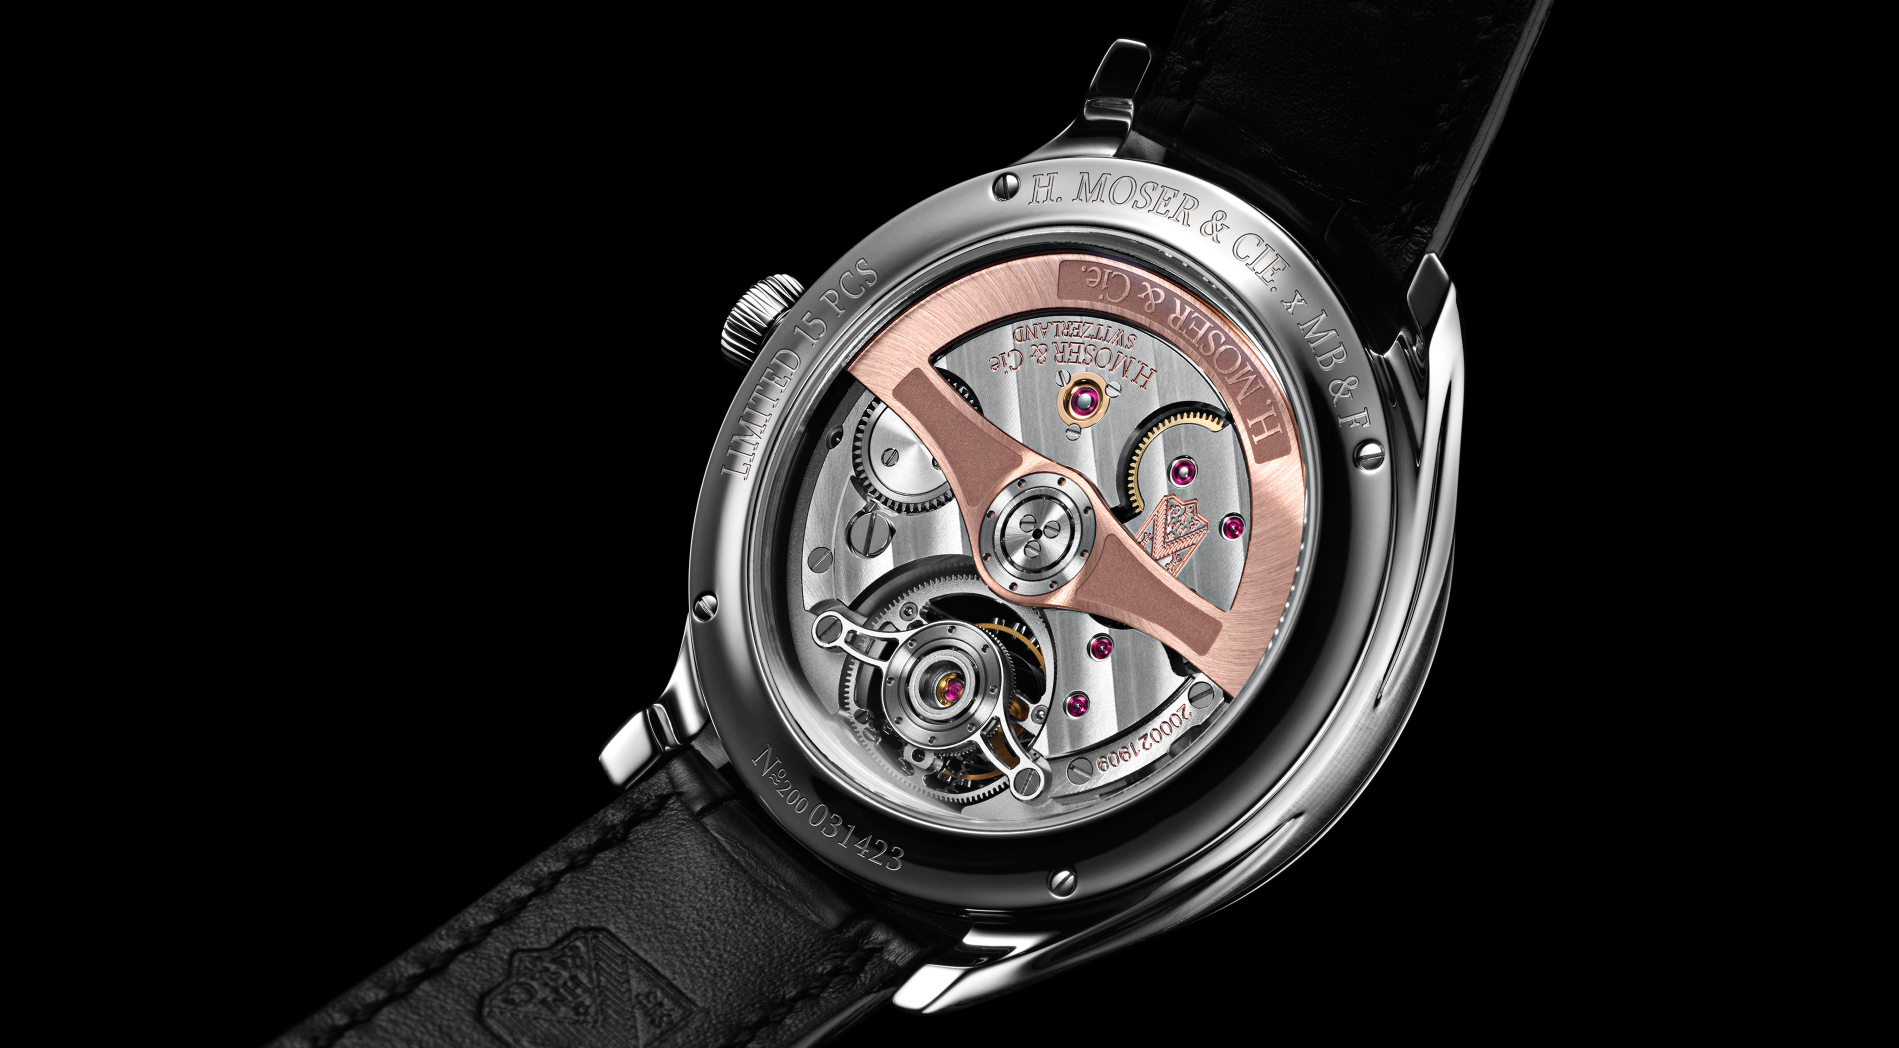 H. Moser & Cie. × MB&F